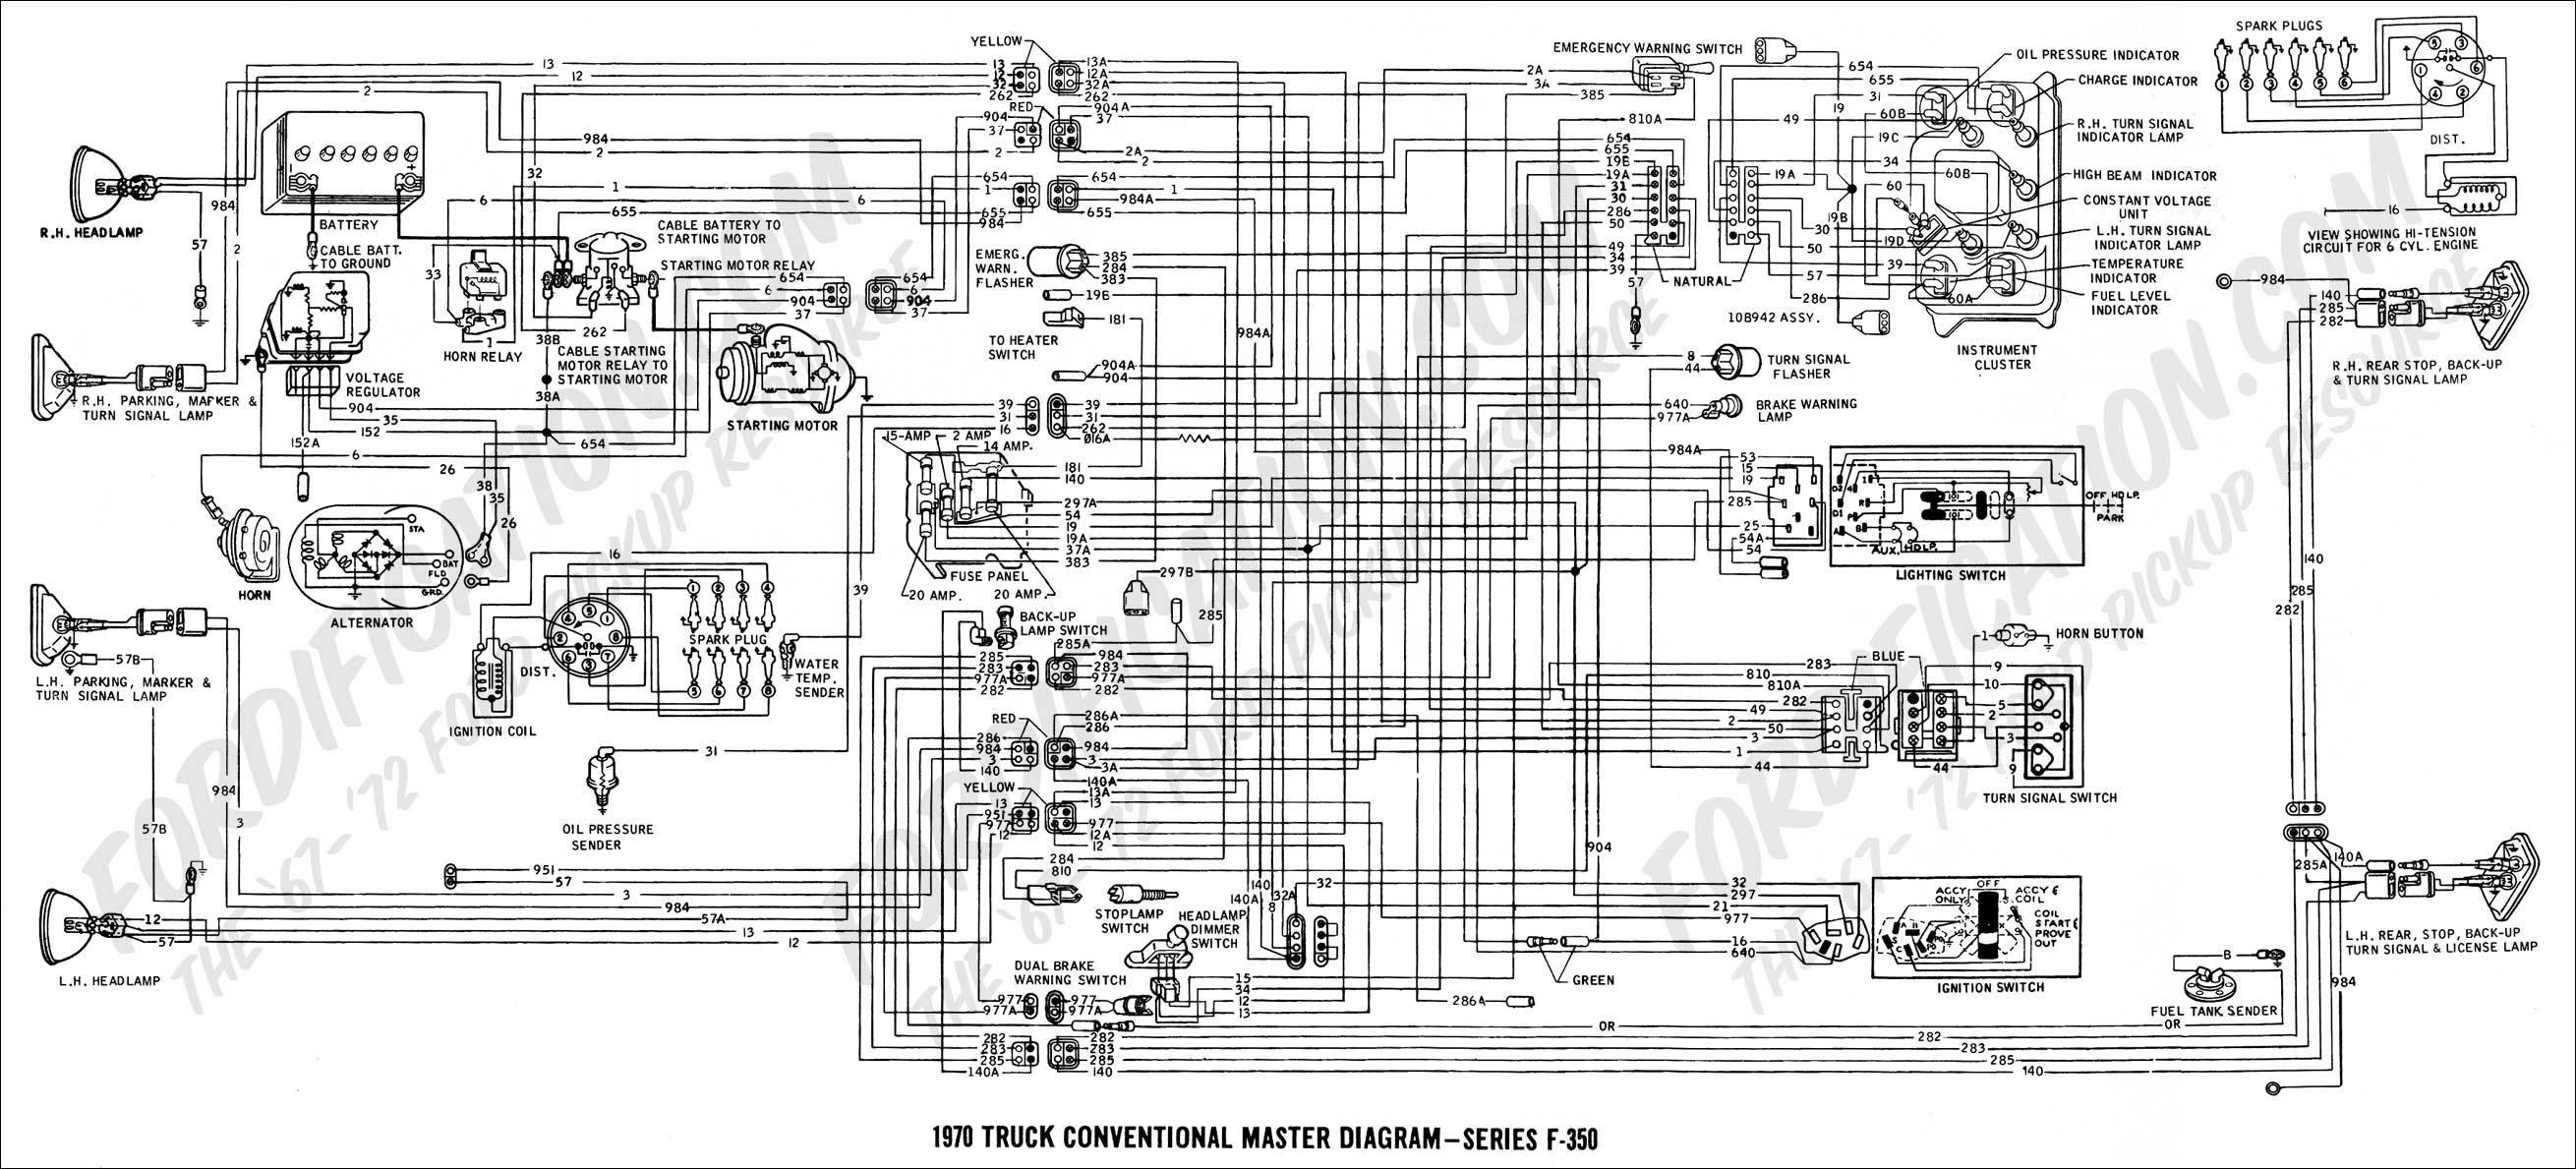 Jeep Cherokee Engine Diagram Transfer Switch Wiring Diagram Models V V V V Of Jeep Cherokee Engine Diagram